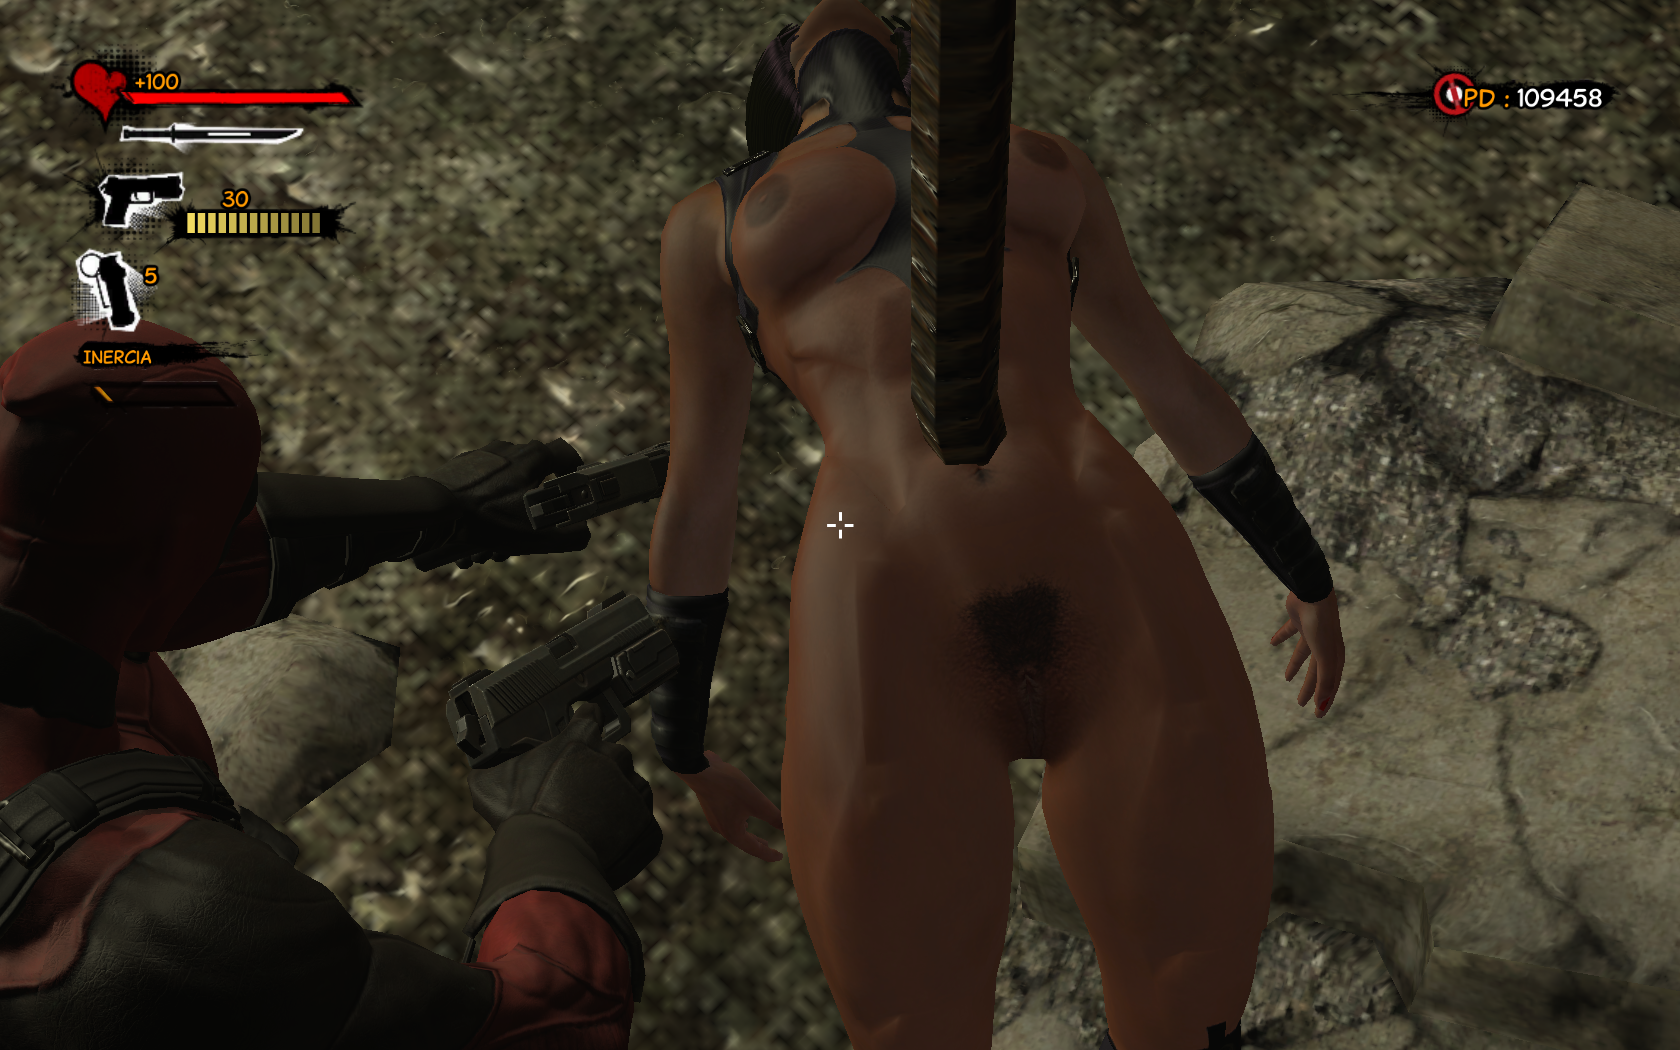 Fable 2 nudes sexual picture